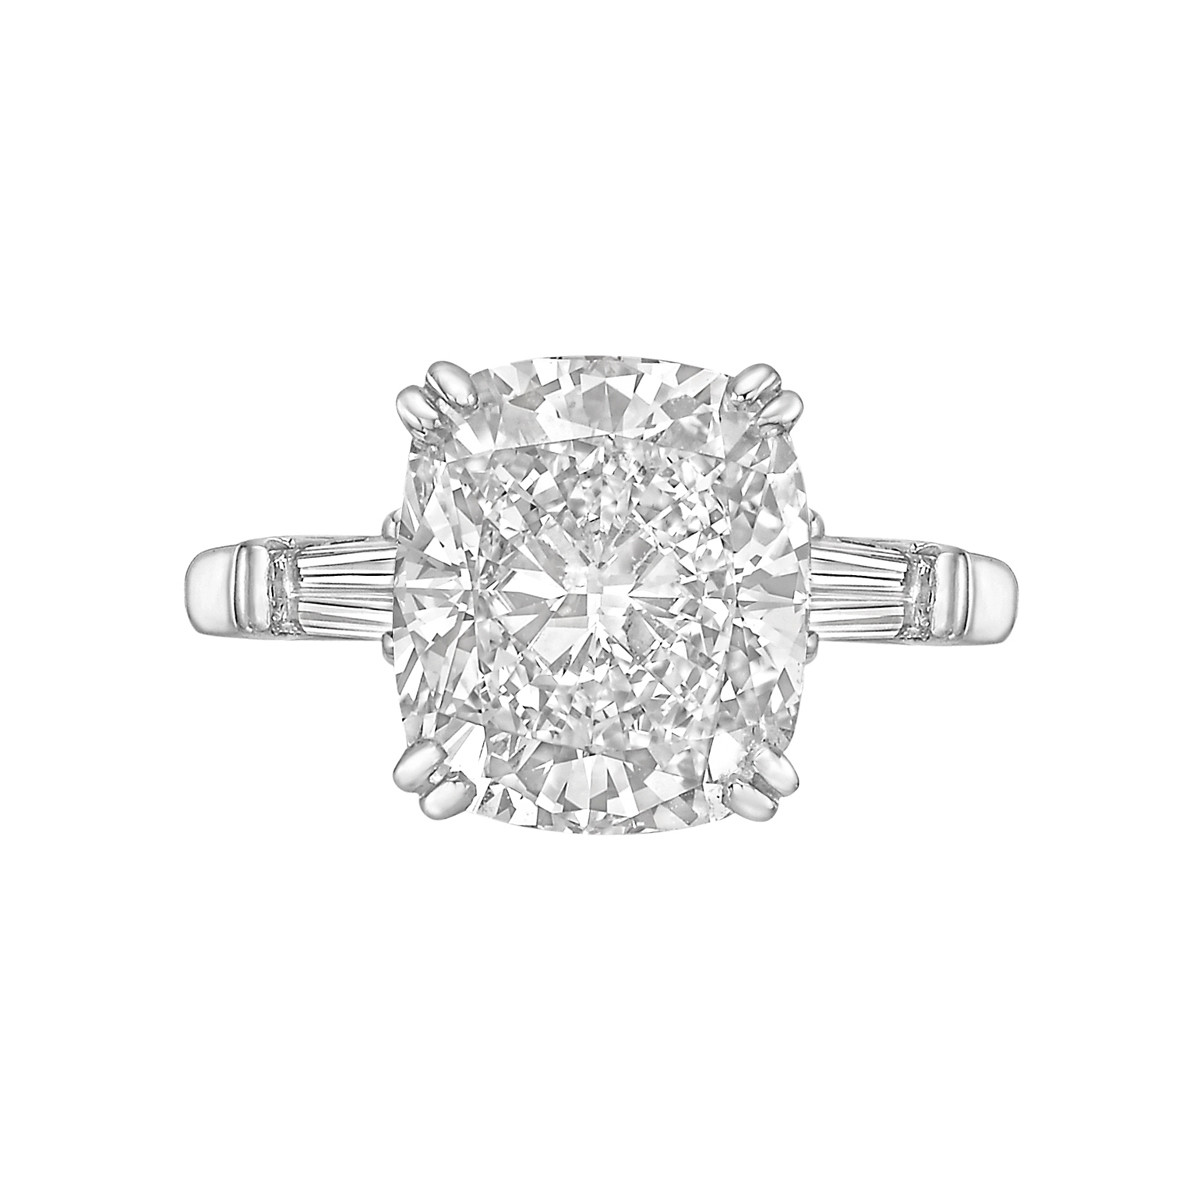 6.01ct Fine Colorless Cushion-Cut Diamond Ring